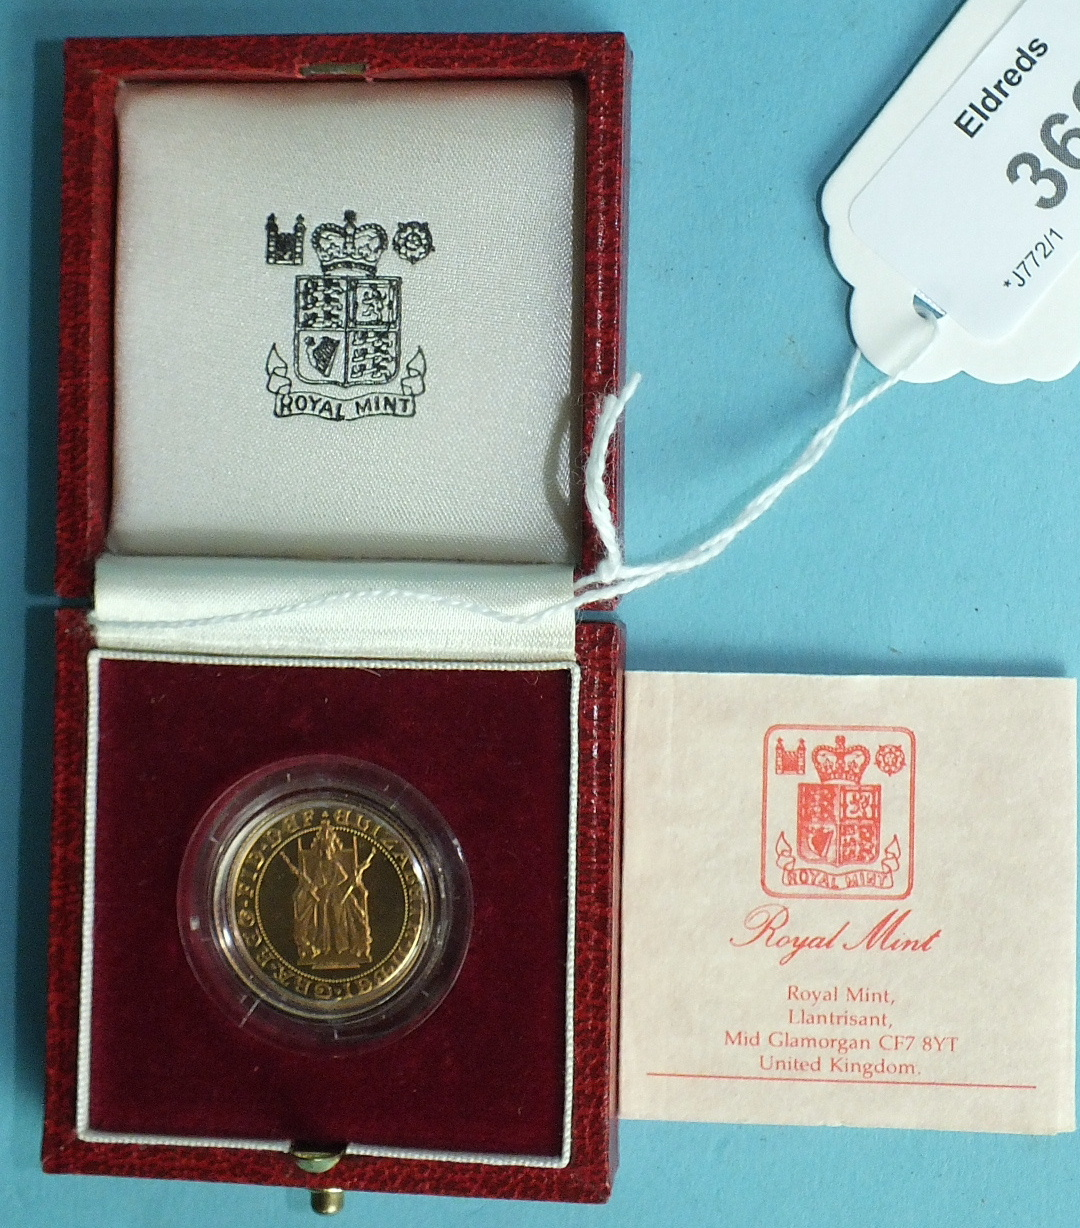 Lot 366 - A Royal Mint Proof 1989 sovereign for the '500th Anniversary of the First Gold Sovereign 1489-1989',